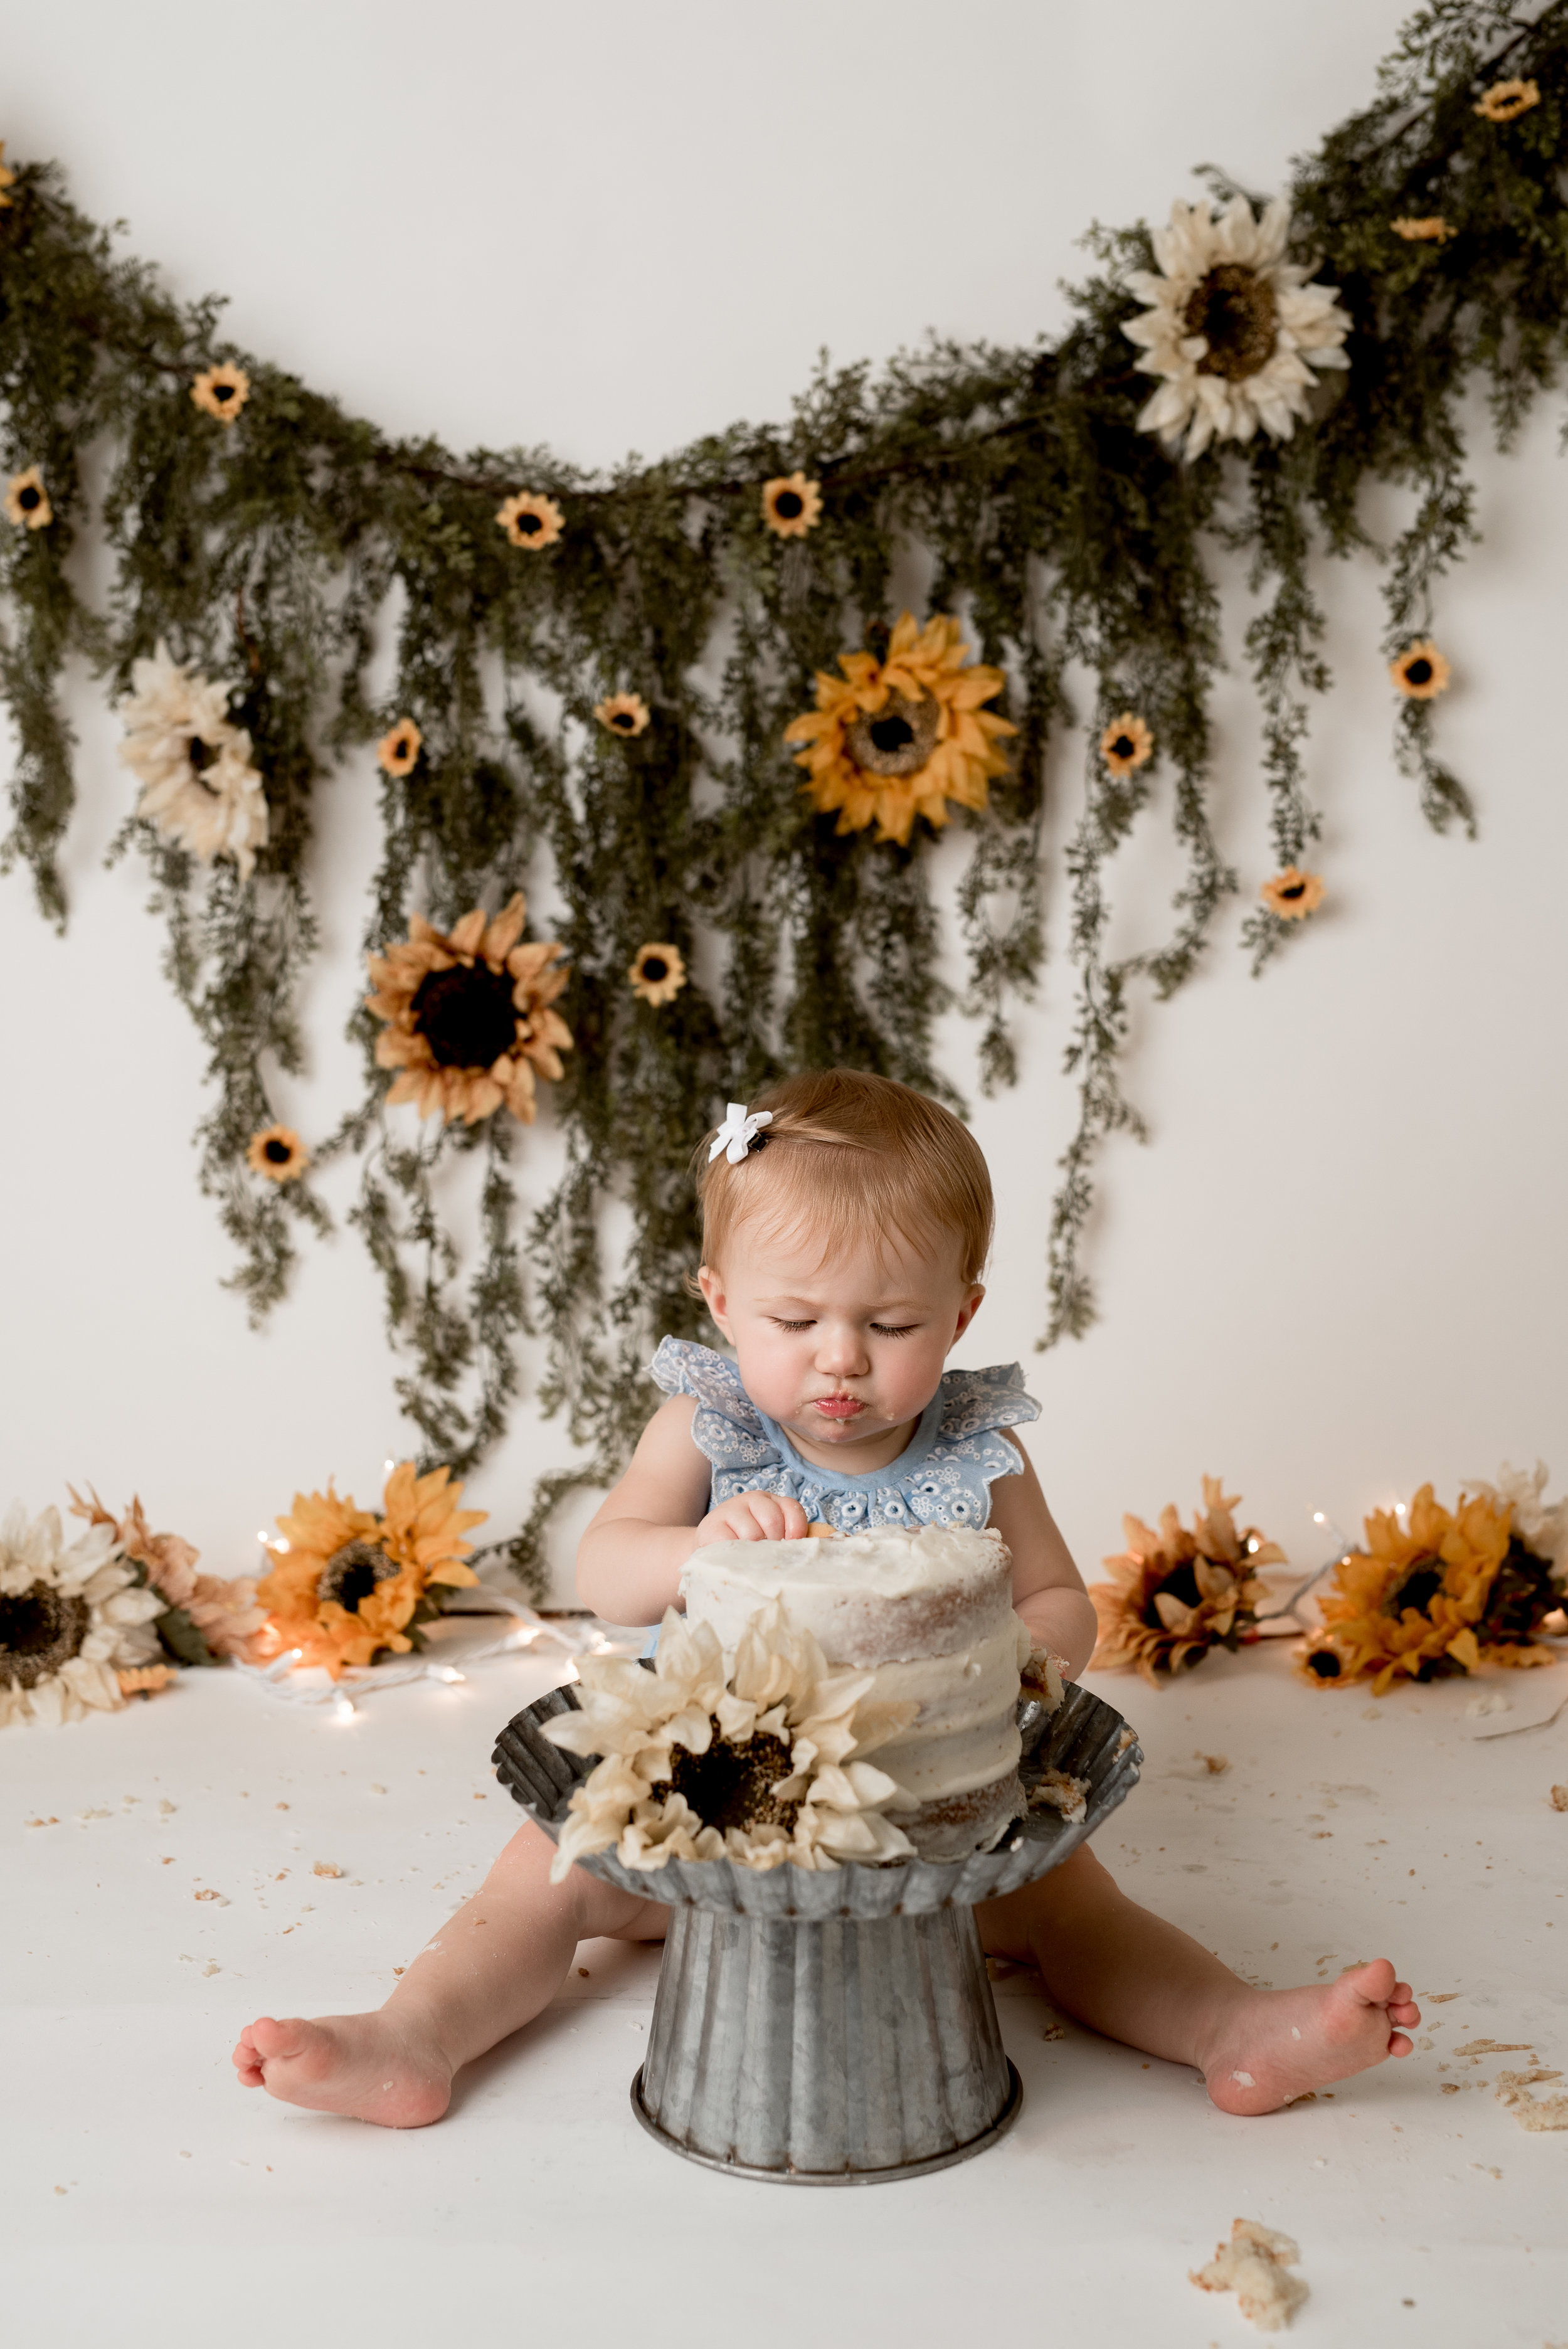 baby girl with a sunflower theme for her first birthday with junebug photography studio in manhattan, ks